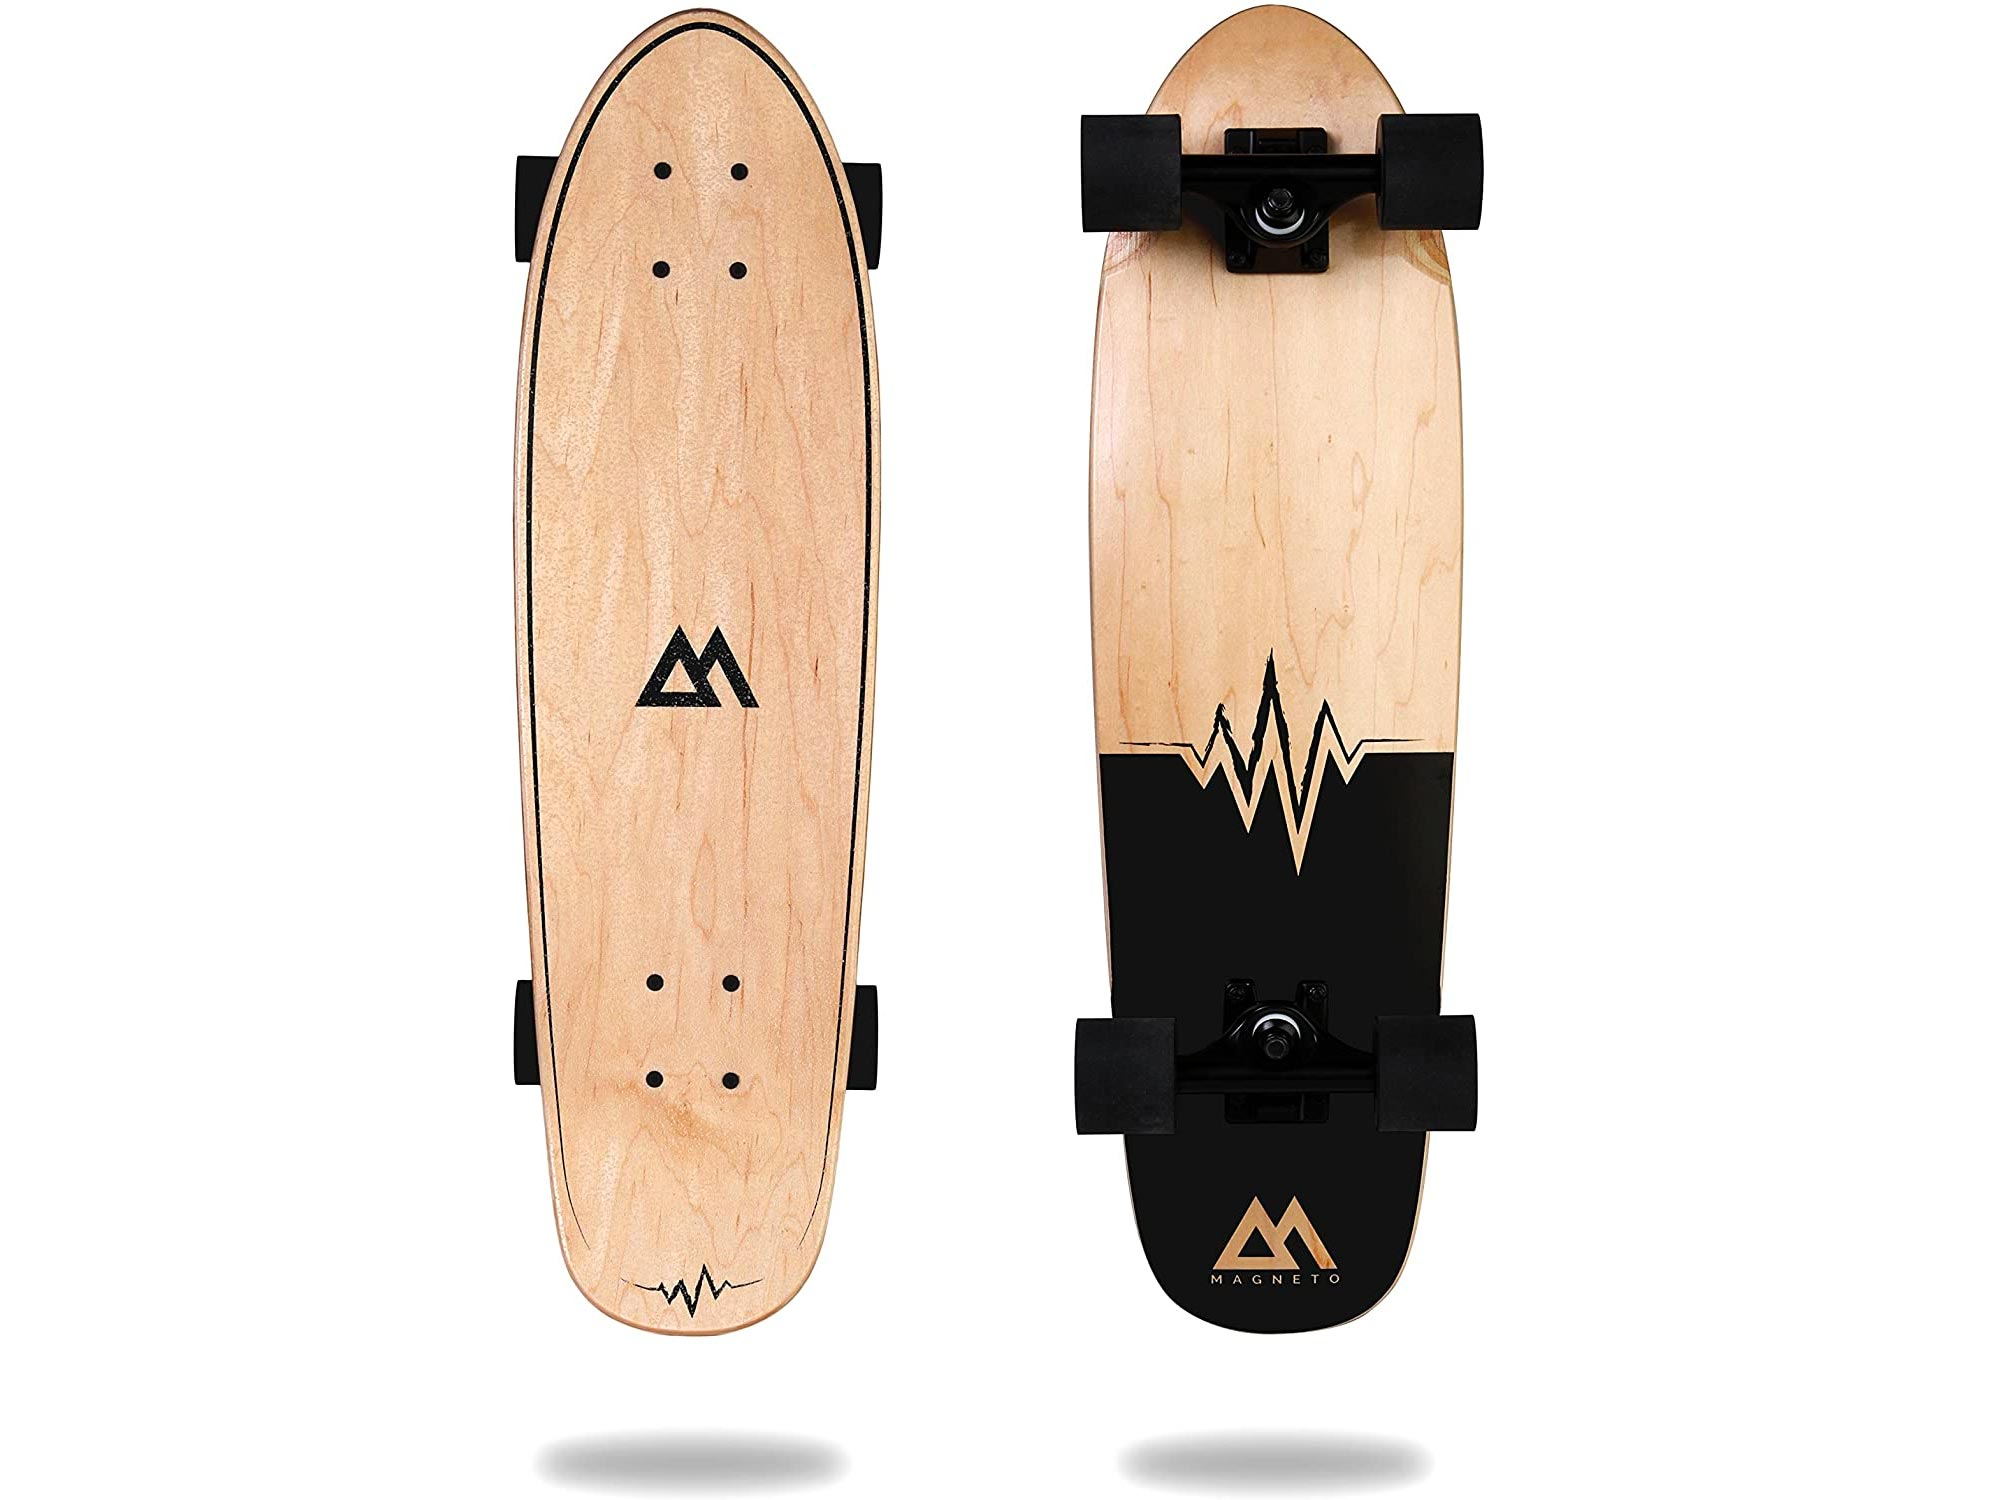 Magneto Mini Cruiser Skateboard Cruiser | Short Board | Canadian Maple Deck - Designed for Kids, Teens and Adults